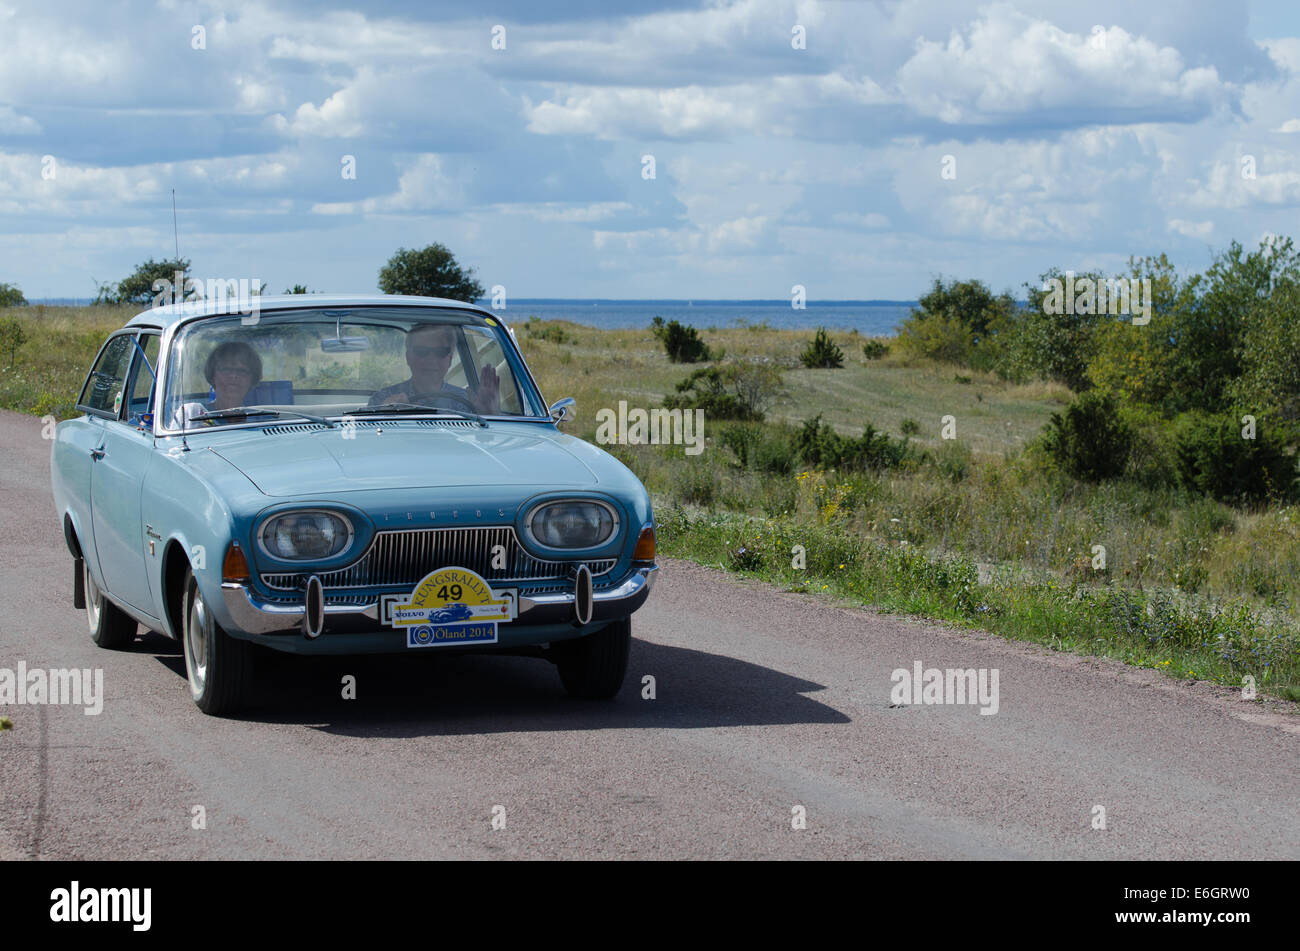 ford taunus 17 mts 1964 in oldtimer rally in sweden stock photo royalty free image 72899372. Black Bedroom Furniture Sets. Home Design Ideas